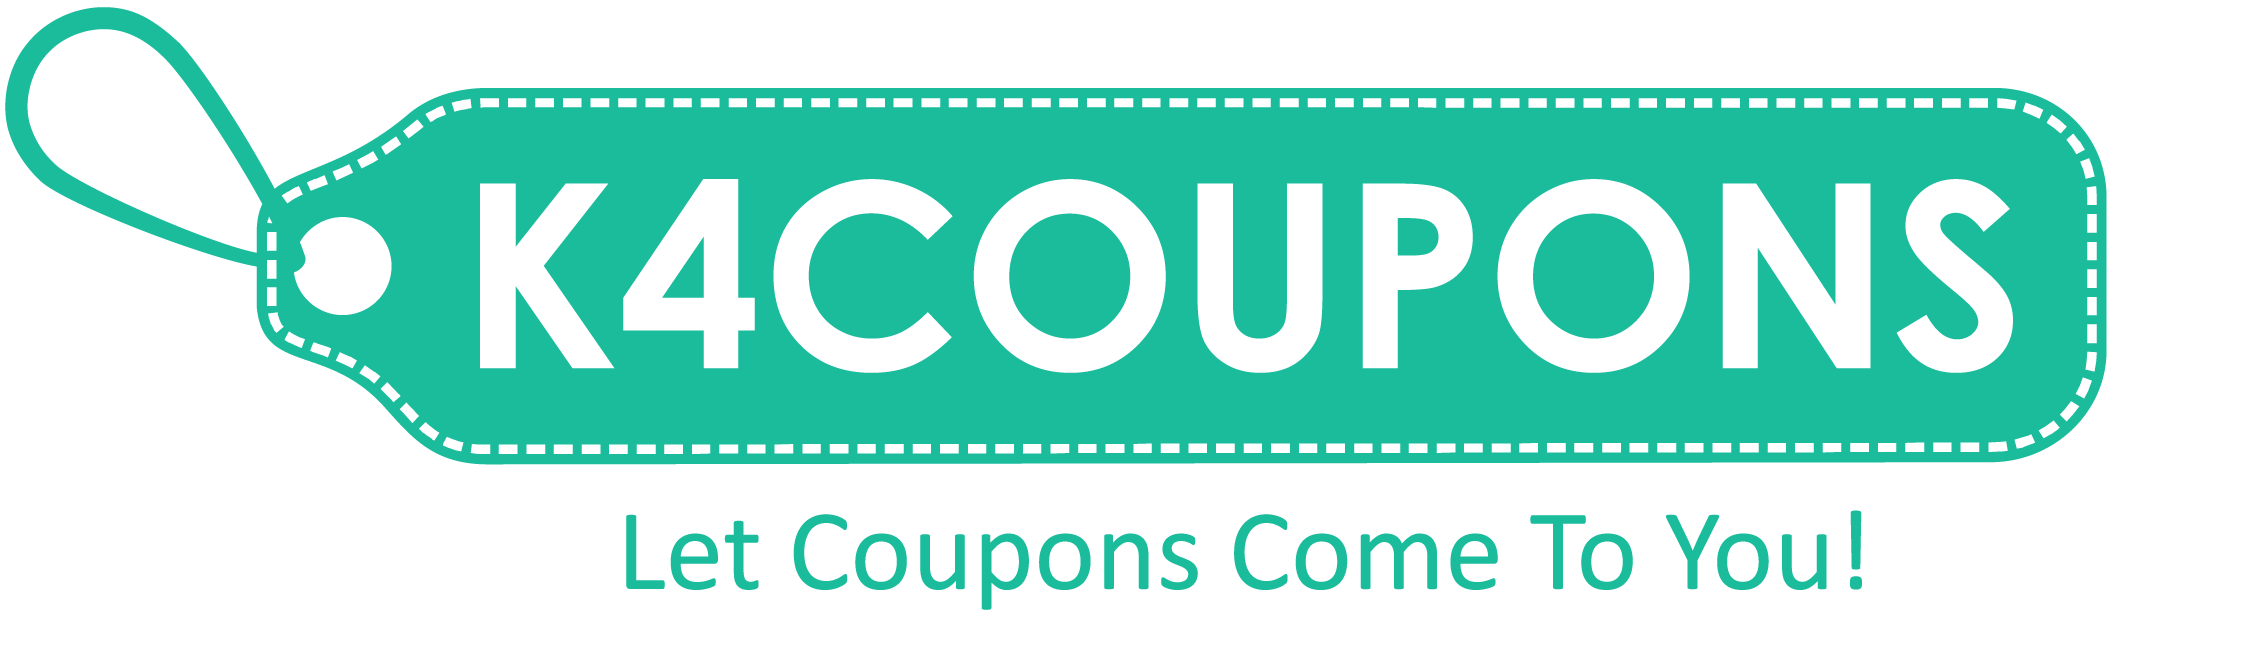 Coupon code png. Save more with coupons